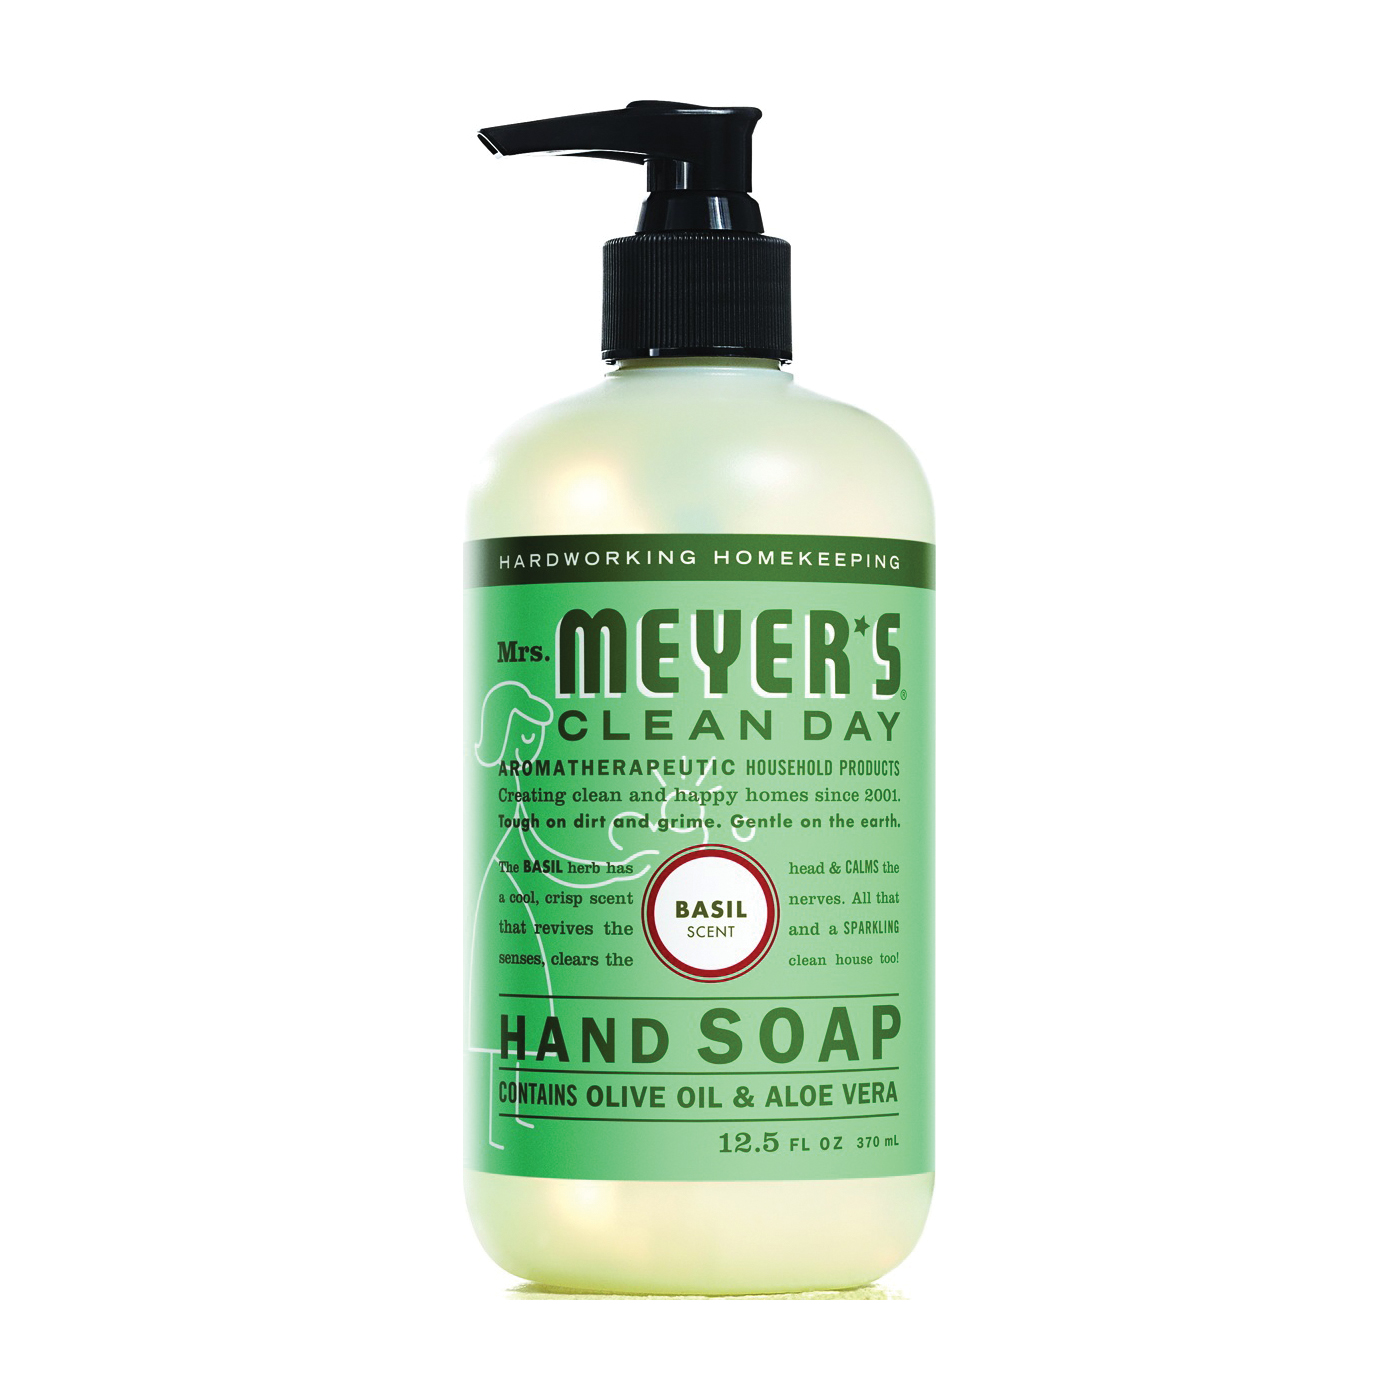 Picture of Mrs. Meyer's 14104 Hand Soap, Liquid, Colorless, Basil, 12.5 oz Package, Bottle